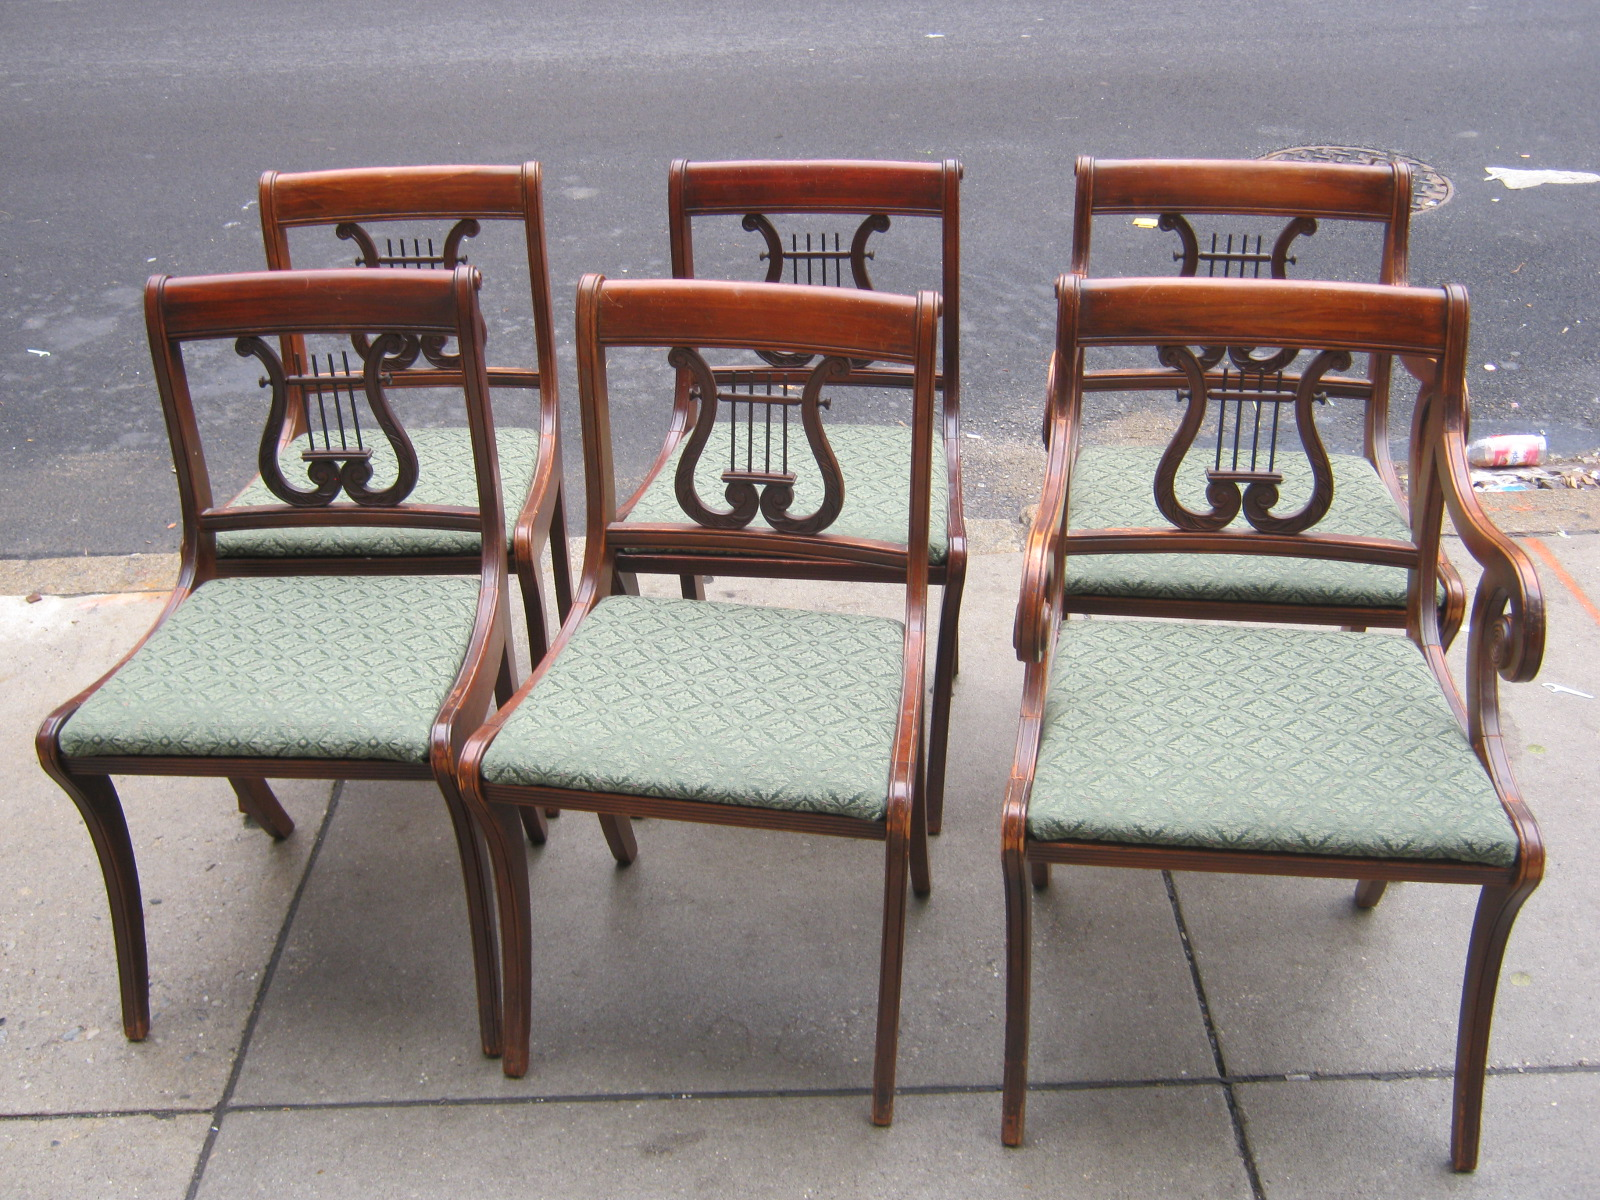 Duncan Phyfe Chairs Wal Mart Uhuru Furniture And Collectibles Dining Room